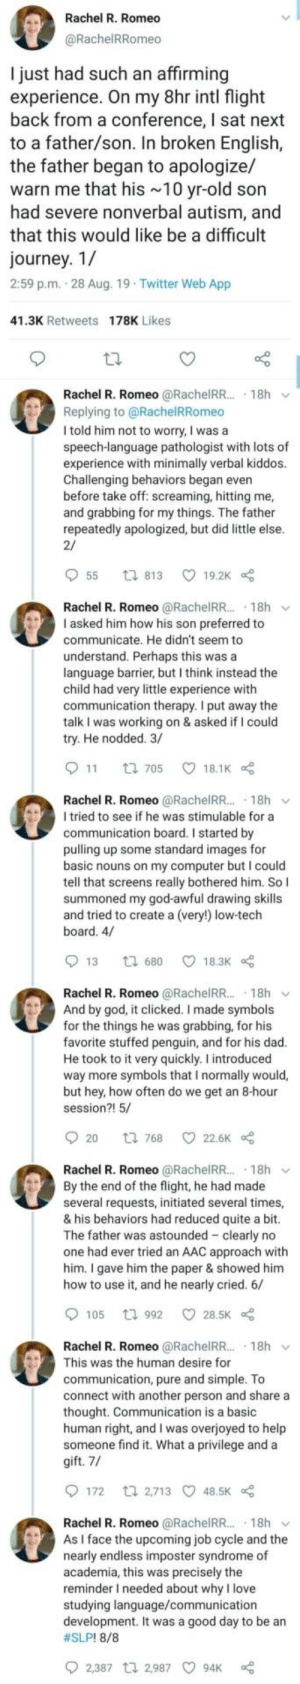 Not sure if it was posted here but definitely should be via /r/wholesomememes https://ift.tt/2MMRPIo: Rachel R. Romeo  @RachelRRomeo  I just had such an affirming  experience. On my 8hr intl flight  back from a conference, I sat next  to a father/son. In broken English,  the father began to apologize/  warn me that his 10 yr-old son  had severe nonverbal autism, and  that this would like be a difficult  journey. 1/  2:59 p.m. 28 Aug. 19 Twitter Web App  41.3K Retweets 178K Likes  Rachel R. Romeo @RachelRR.. 18h  Replying to@RachelRRomeo  I told him not to worry, I was a  speech-language pathologist with lots of  experience with minimally verbal kiddos.  Challenging behaviors began even  before take off: screaming, hitting me,  and grabbing for my things. The father  repeatedly apologized, but did little else.  2/  55  19.2K  ti 813  Rachel R. Romeo @RachelR.. 18h  I asked him how his son preferred to  communicate. He didn't seem to  understand. Perhaps this was a  language barrier, but I think instead the  child had very little experience with  communication therapy. I put away the  talk I was working on & asked if I could  try. He nodded. 3/  11  18.1K  t 705  Rachel R. Romeo @RachelR... 18h  I tried to see if he was stimulable for a  communication board. I started by  pulling up some standard images for  basic nouns on my computer but I could  tell that screens really bothered him. So I  summoned my god-awful drawing skills  and tried to create a (very!) low-tech  board. 4/  13  18.3K  t 680  Rachel R. Romeo @RachelRR.. 18h  And by god, it clicked. I made symbols  for the things he was grabbing, for his  favorite stuffed penguin, and for his dad.  He took to it very quickly. I introduced  way more symbols that I normally would,  but hey, how often do we get an 8-hour  session?! 5/  20  22.6K  t 768  Rachel R. Romeo @RachelRR.. 18h  By the end of the flight, he had made  several requests, initiated several times,  & his behaviors had reduced quite a bit.  The father was astounded clearly no  one had ever tried an AAC approach with  him. I gave him the paper & showed him  how to use it, and he nearly cried. 6/  105  28.5K  t 992  Rachel R. Romeo @RachelRR.. 18h  This was the human desire for  communication, pure and simple. To  connect with another person and share a  thought. Communication is a basic  human right, and I was overjoyed to help  someone find it. What a privilege and a  gift. 7/  172  t 2,713 48.5K  Rachel R. Romeo @RachelRR..  As I face the upcoming job cycle and the  nearly endless imposter syndrome of  academia, this was precisely the  reminder I needed about why I love  studying language/communication  development. It was a good day to be an  #SLP! 8/8  18h  2,387 t 2,987  94K Not sure if it was posted here but definitely should be via /r/wholesomememes https://ift.tt/2MMRPIo